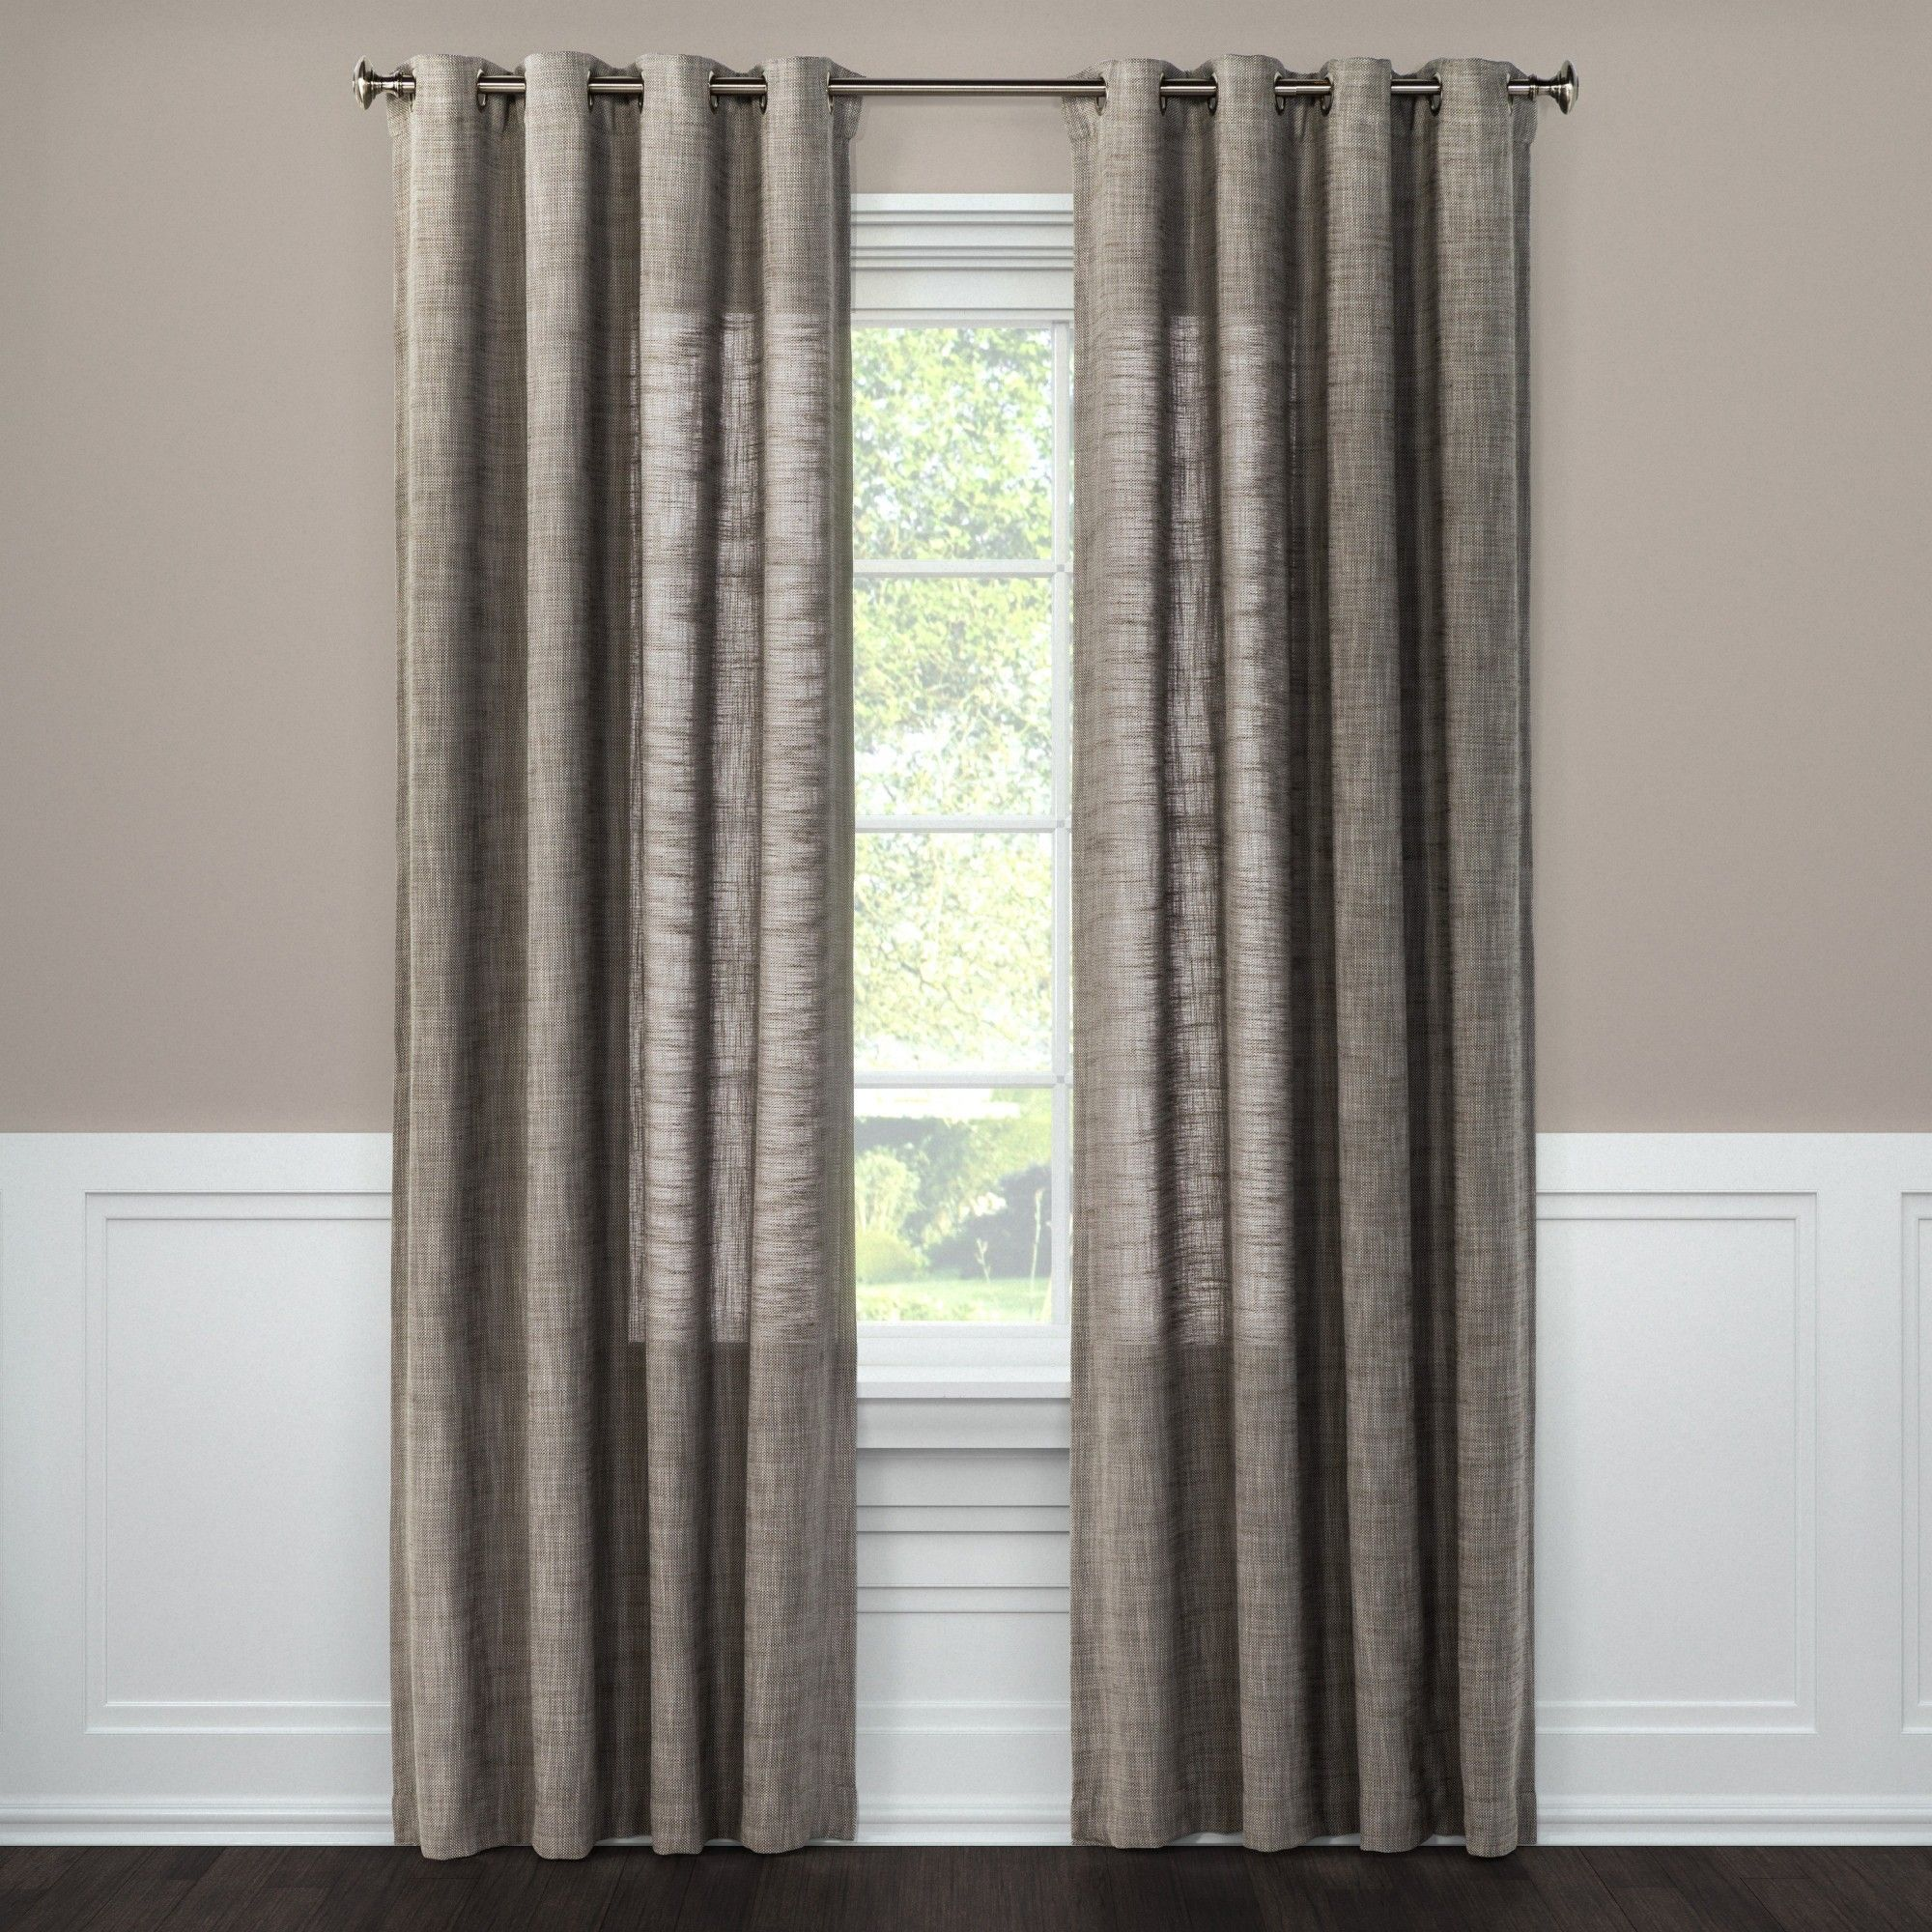 Textured Weave Window Curtain Panel Gray 54 X108 Threshold